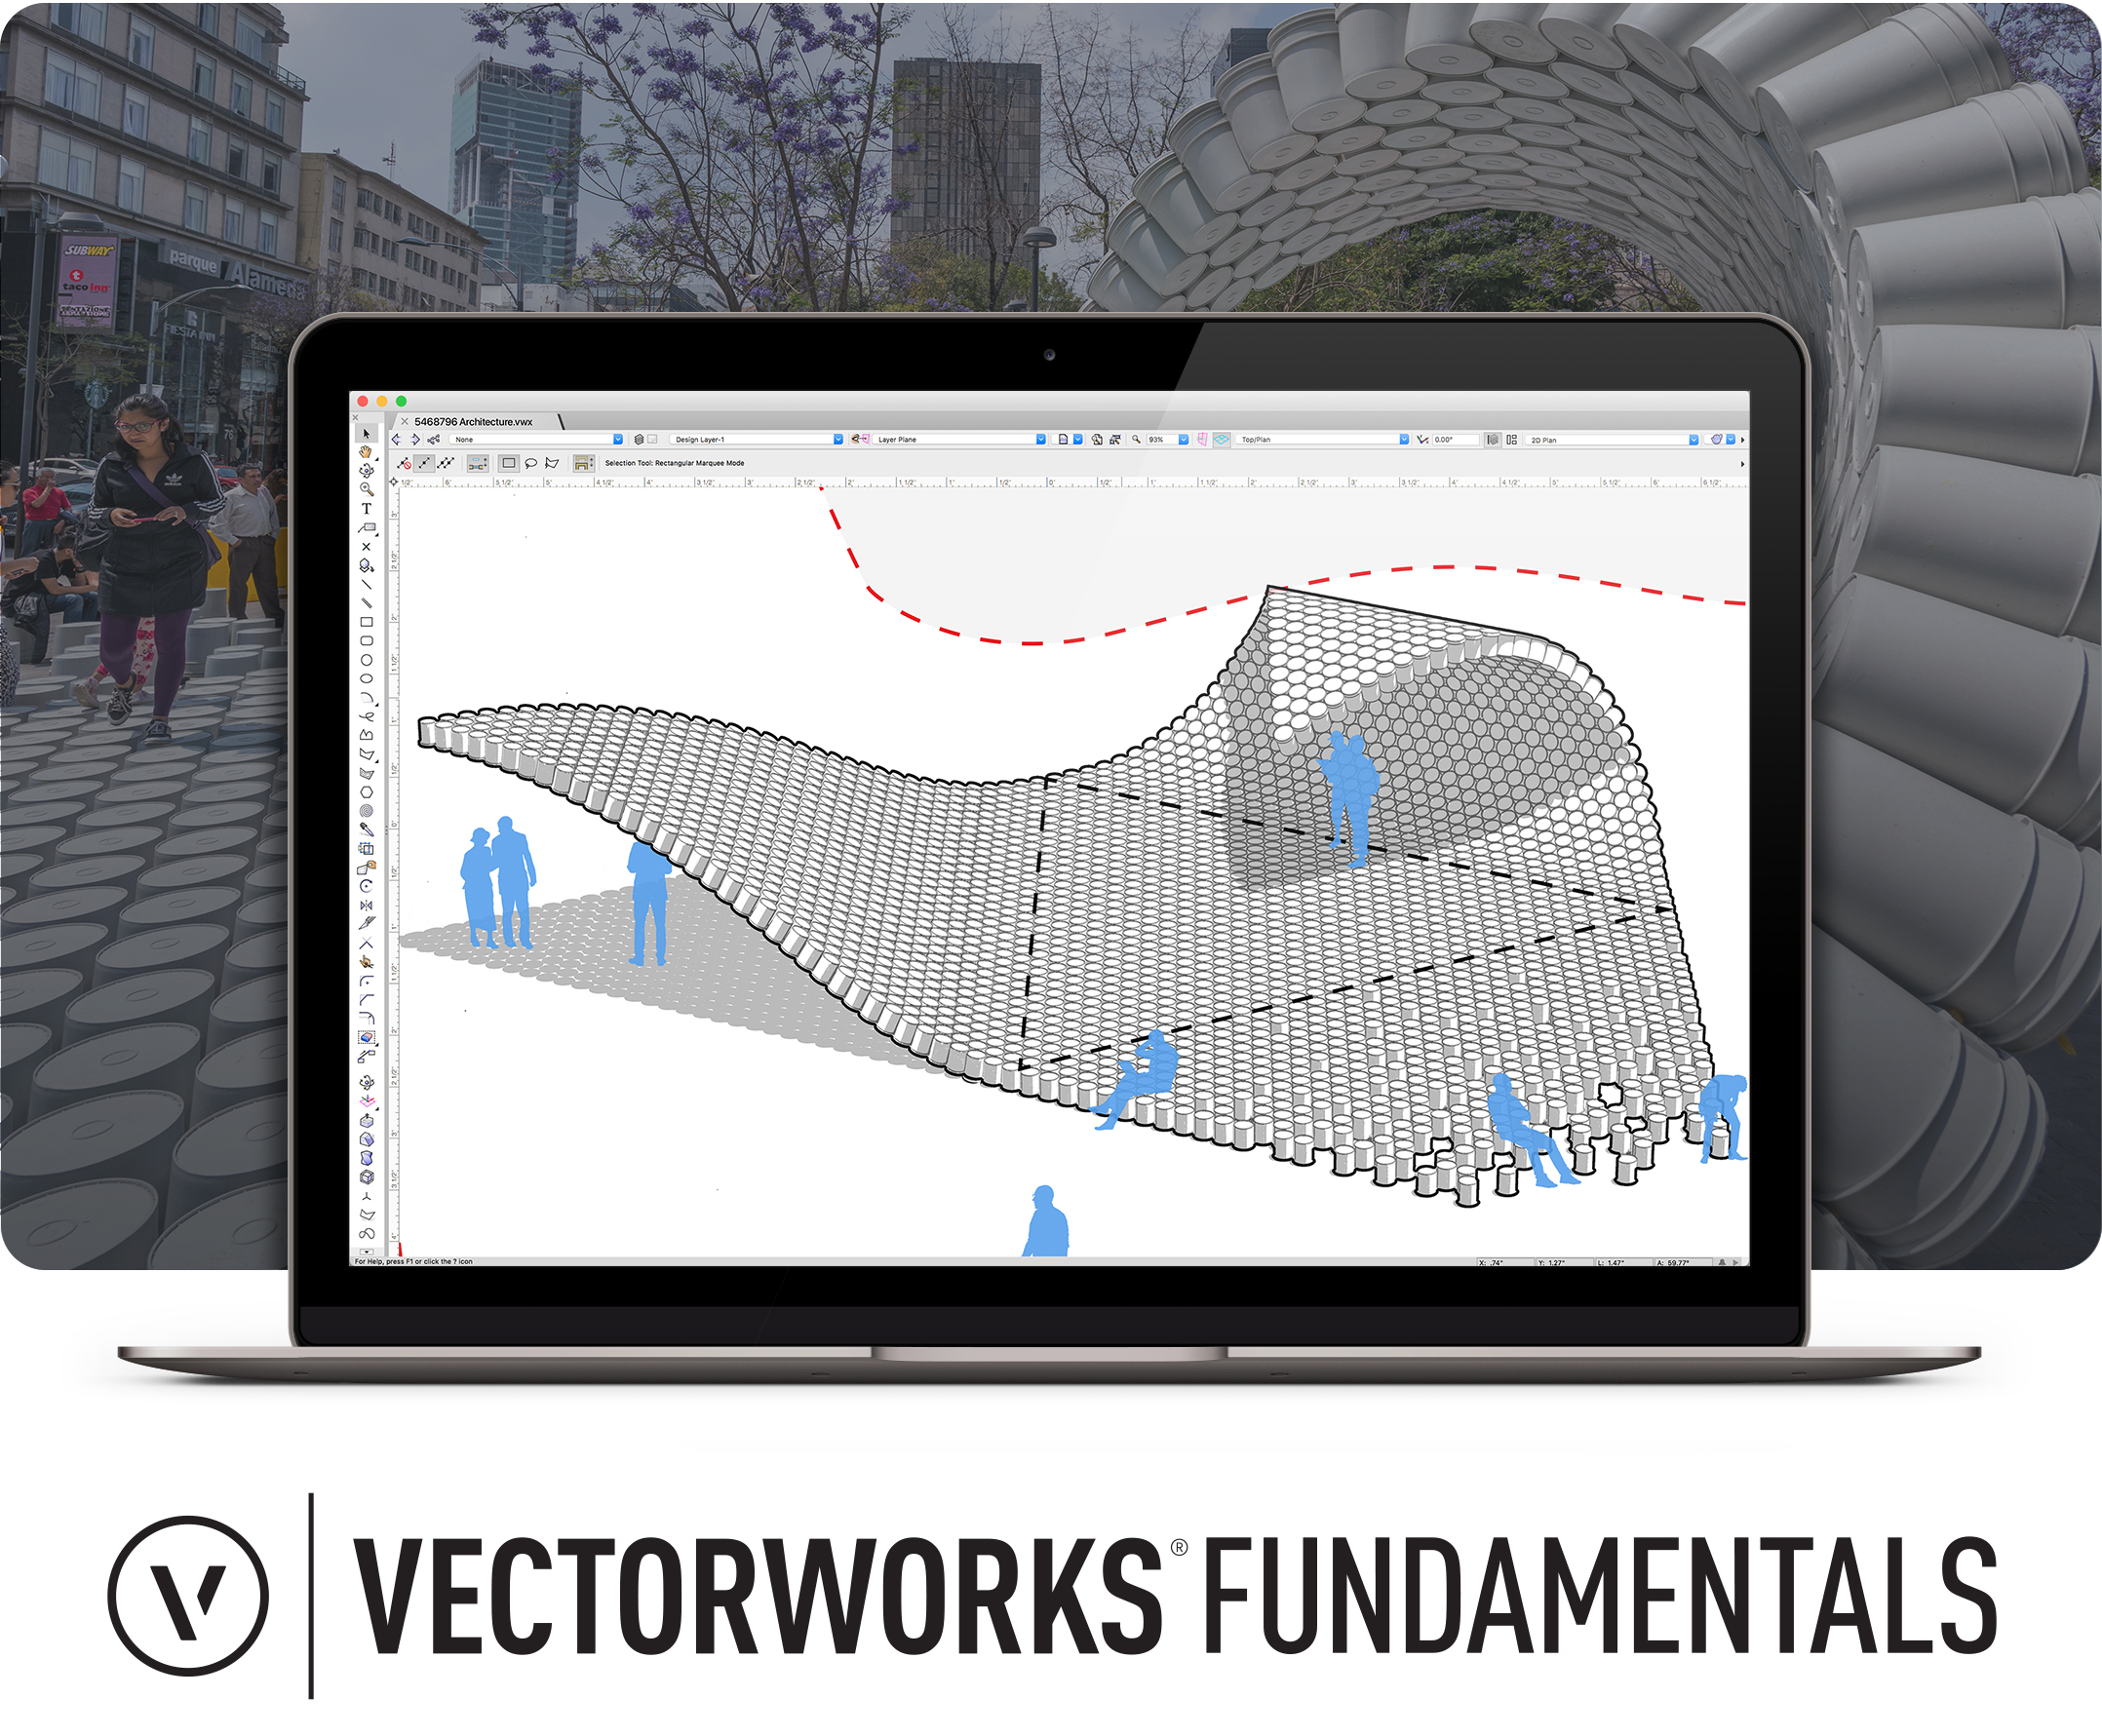 Vectorworks Fundamentals 2020 Getting Started Tutorial